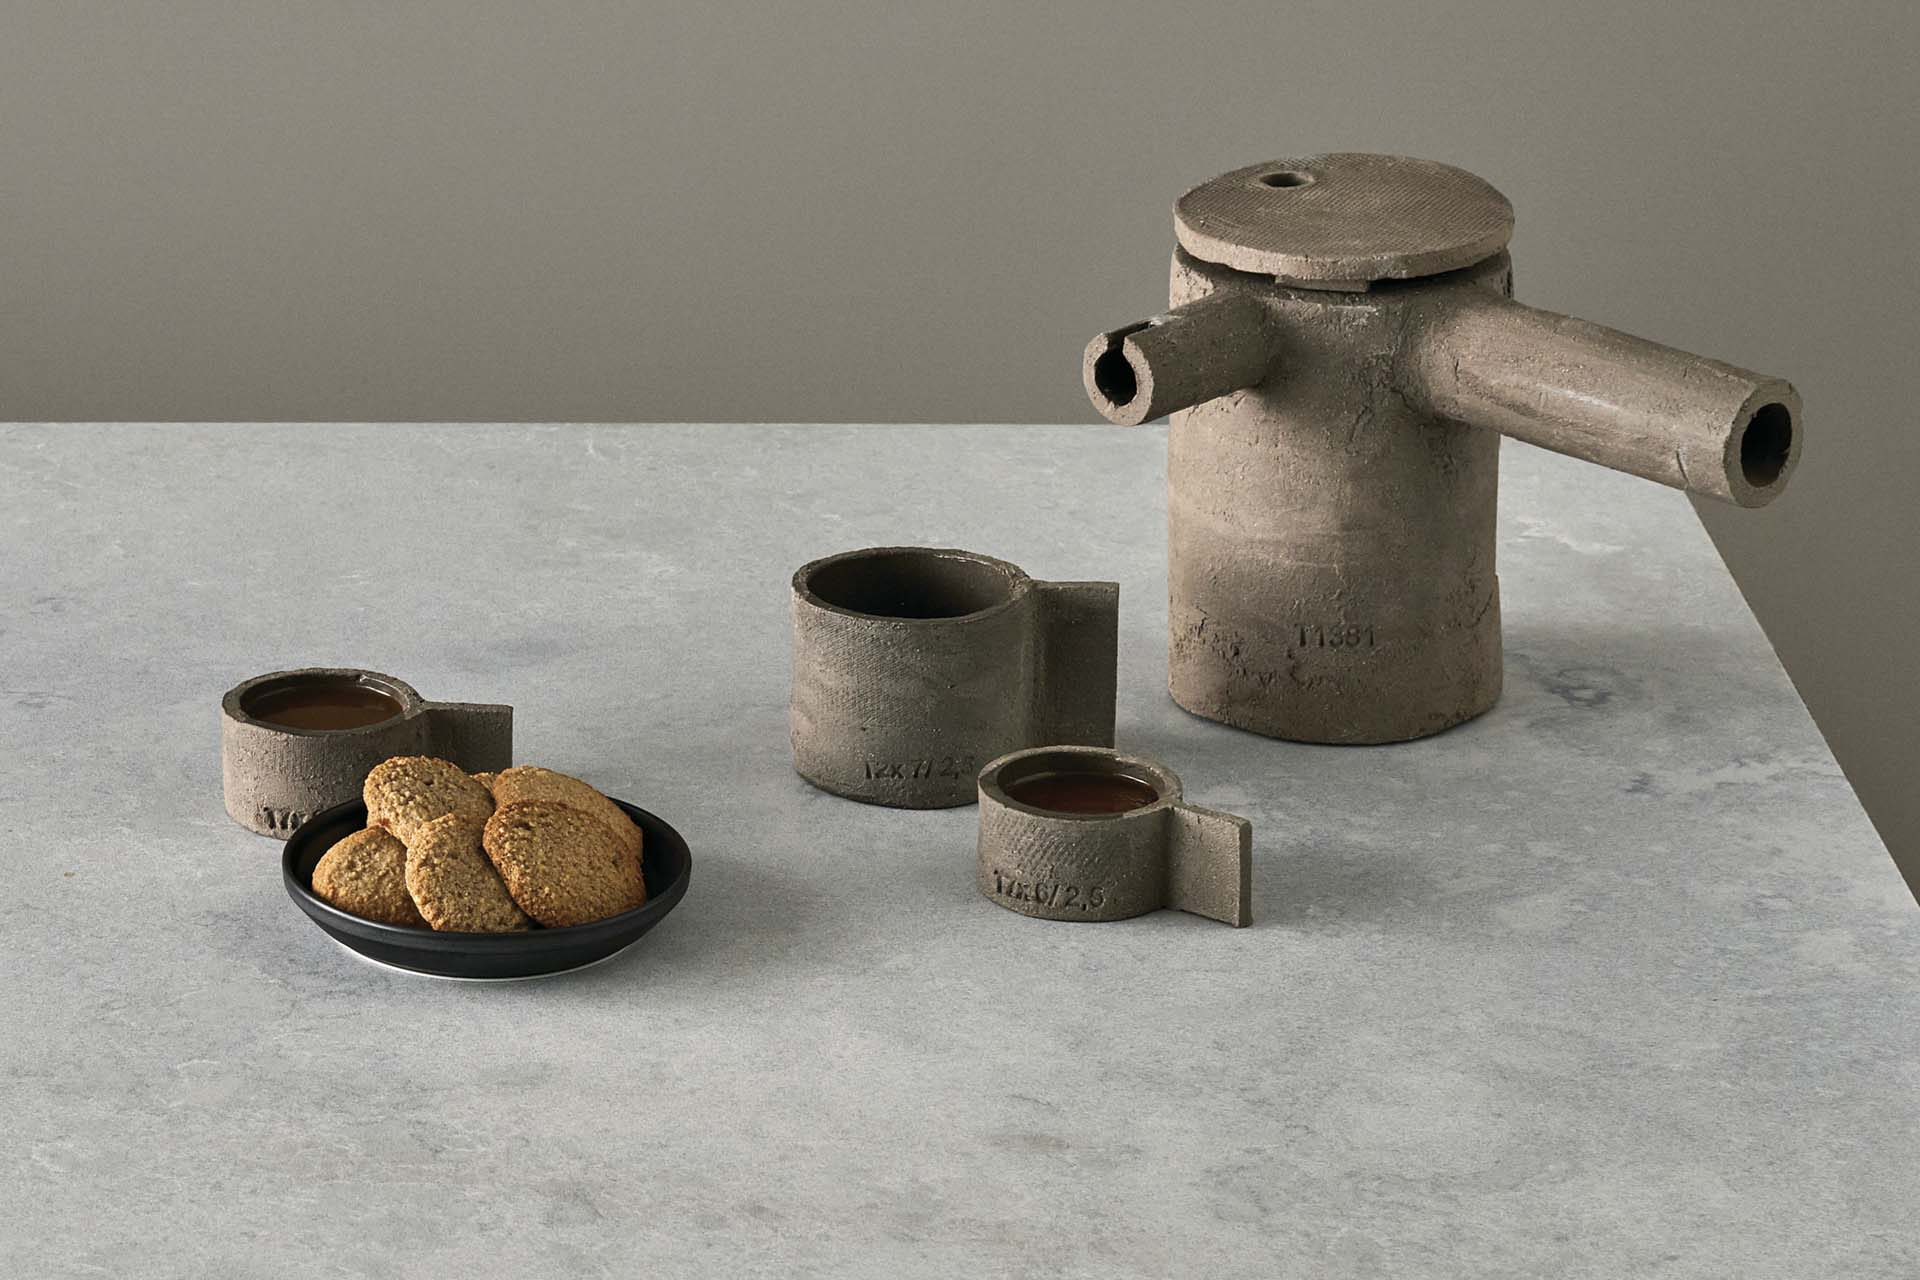 caesarstone quartz worktops offer 4044 Airy Concrete beats anything from Cosentino